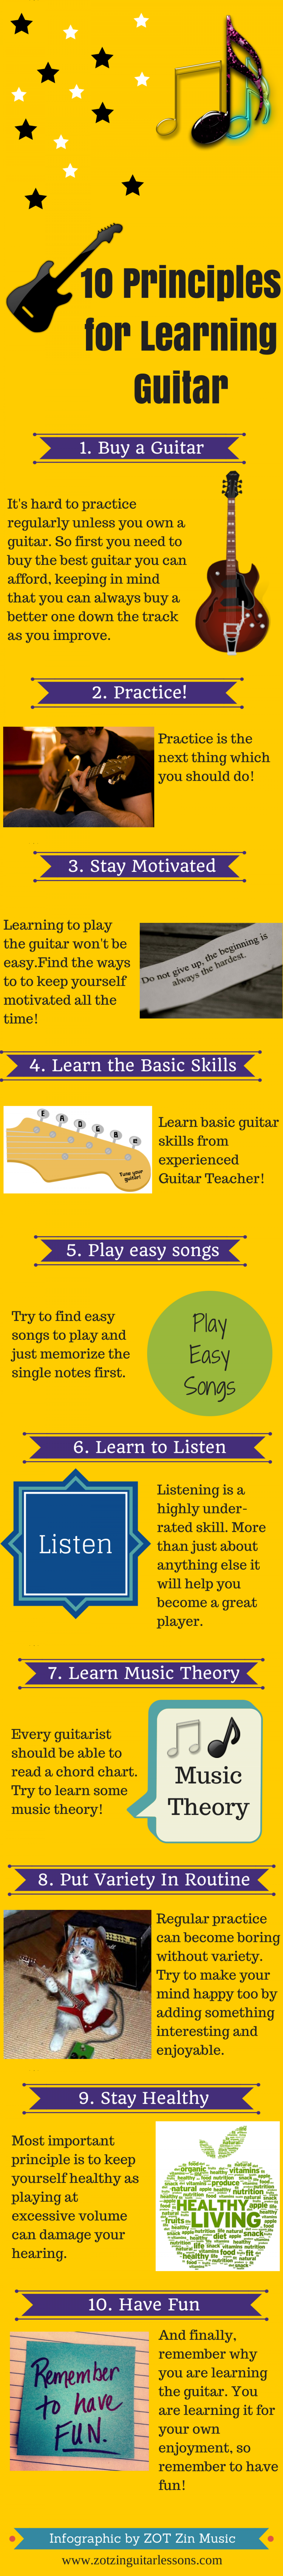 10 Principles for Learning Guitar Infographic